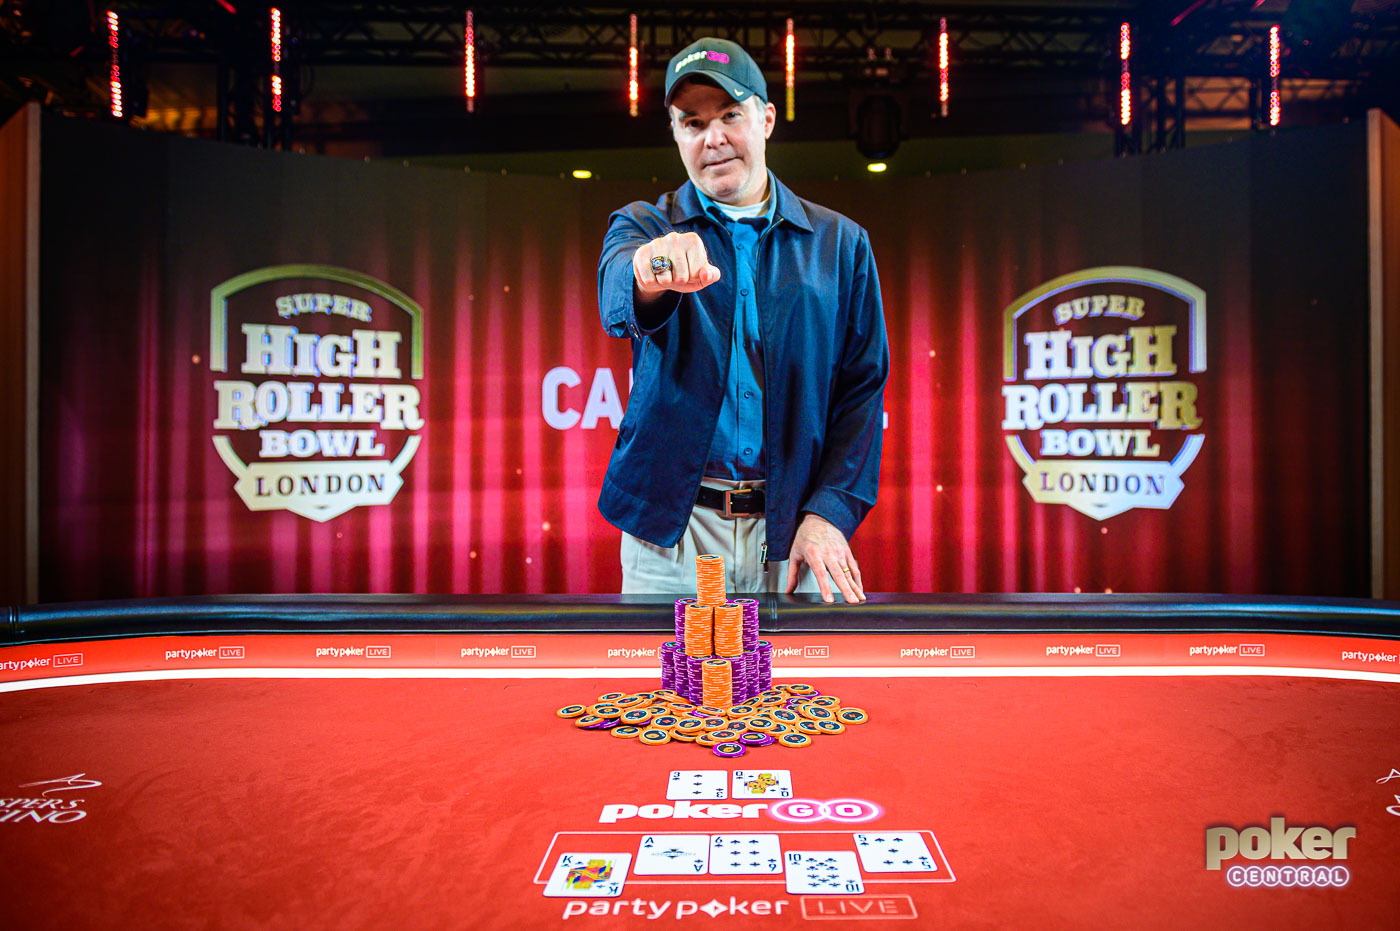 Cary Katz proudly wears the Super High Roller Bowl London ring after taking down the event for £2.1 million.